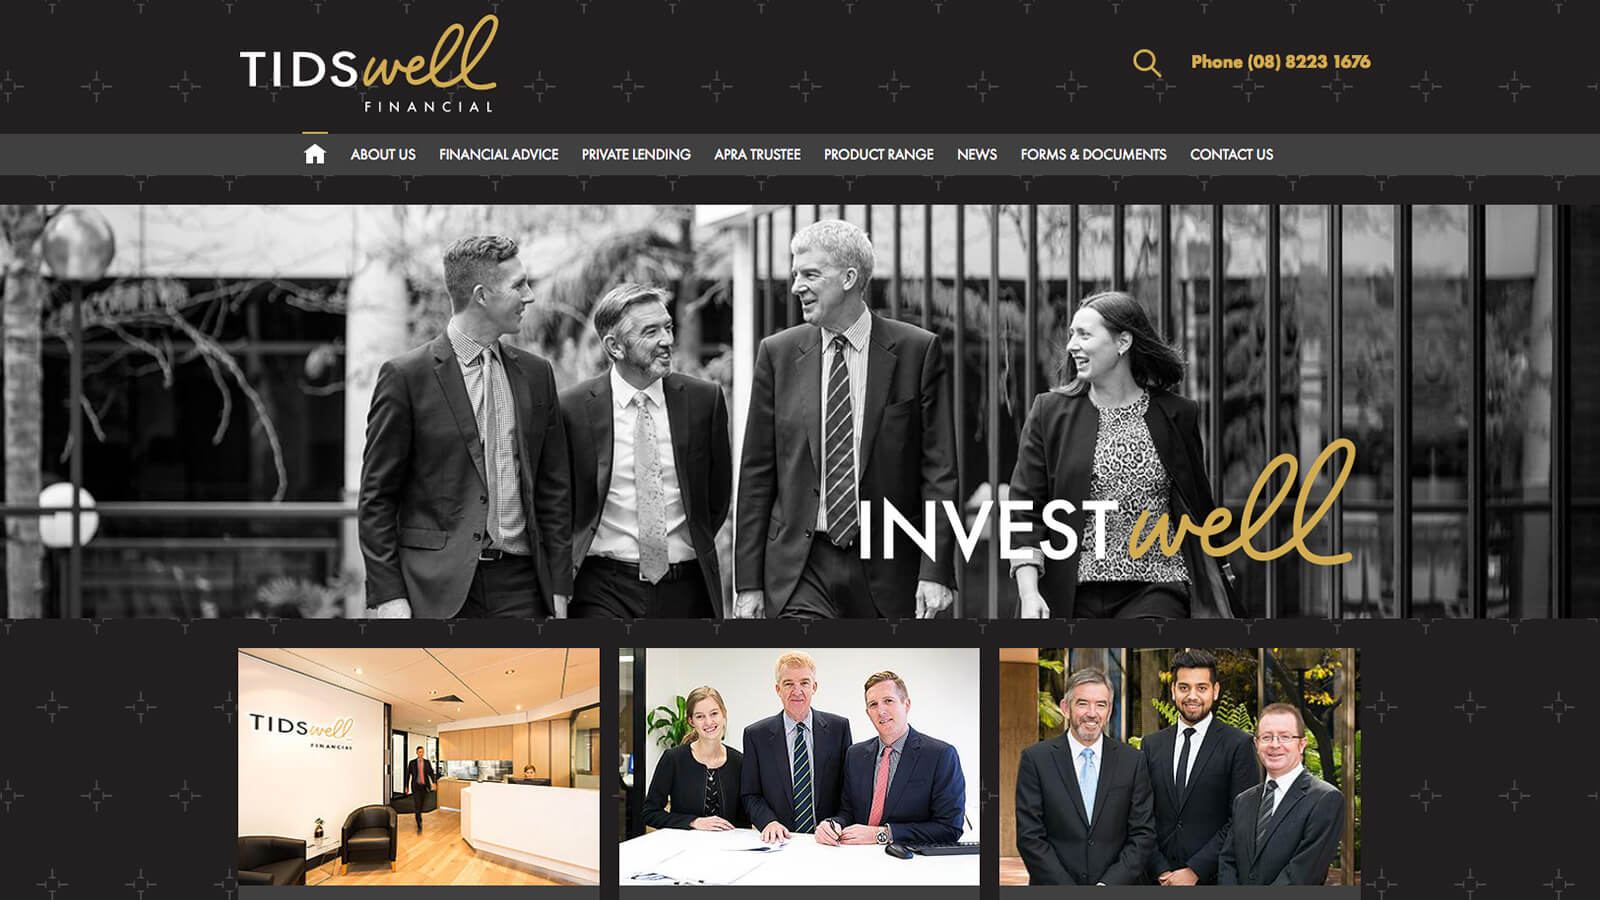 Tidswell Website Development - Design, Branding & Strategy - Digital Agency